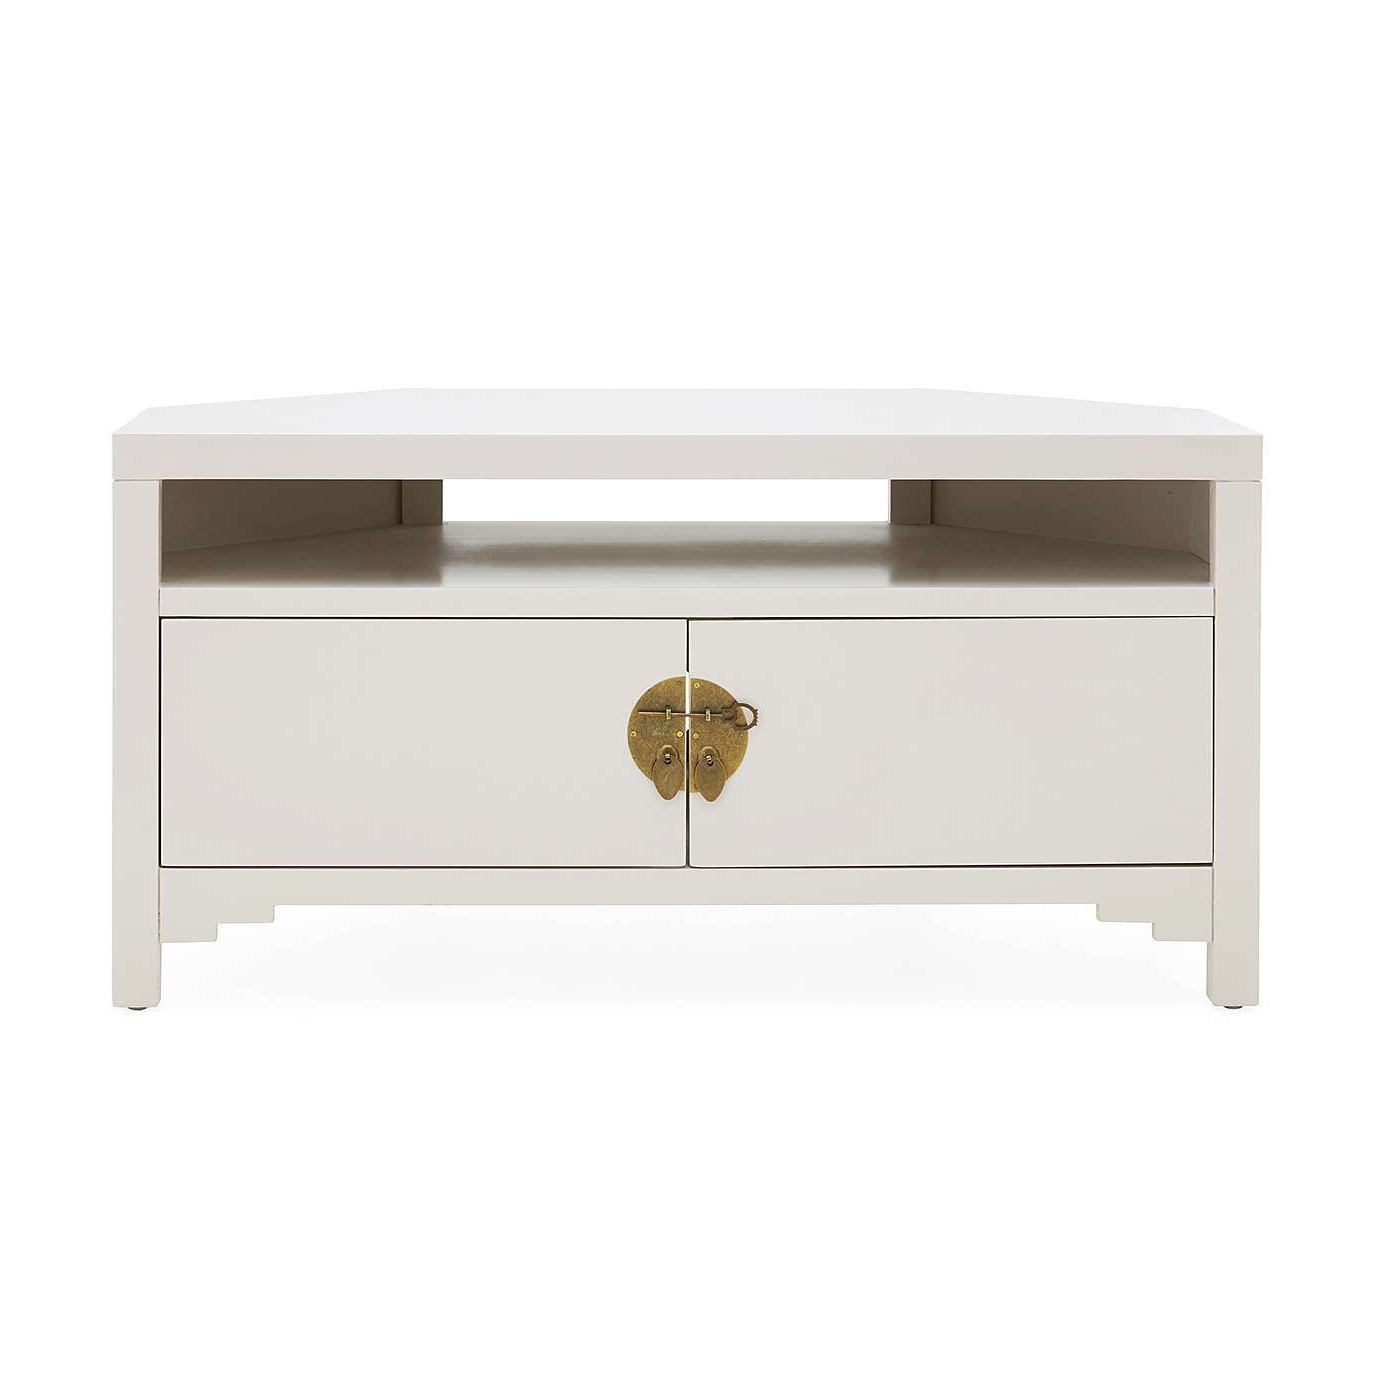 Hanna Oyster Corner Tv Stand | Dunelm (with Images For Hanna Oyster Corner Tv Stands (View 2 of 8)